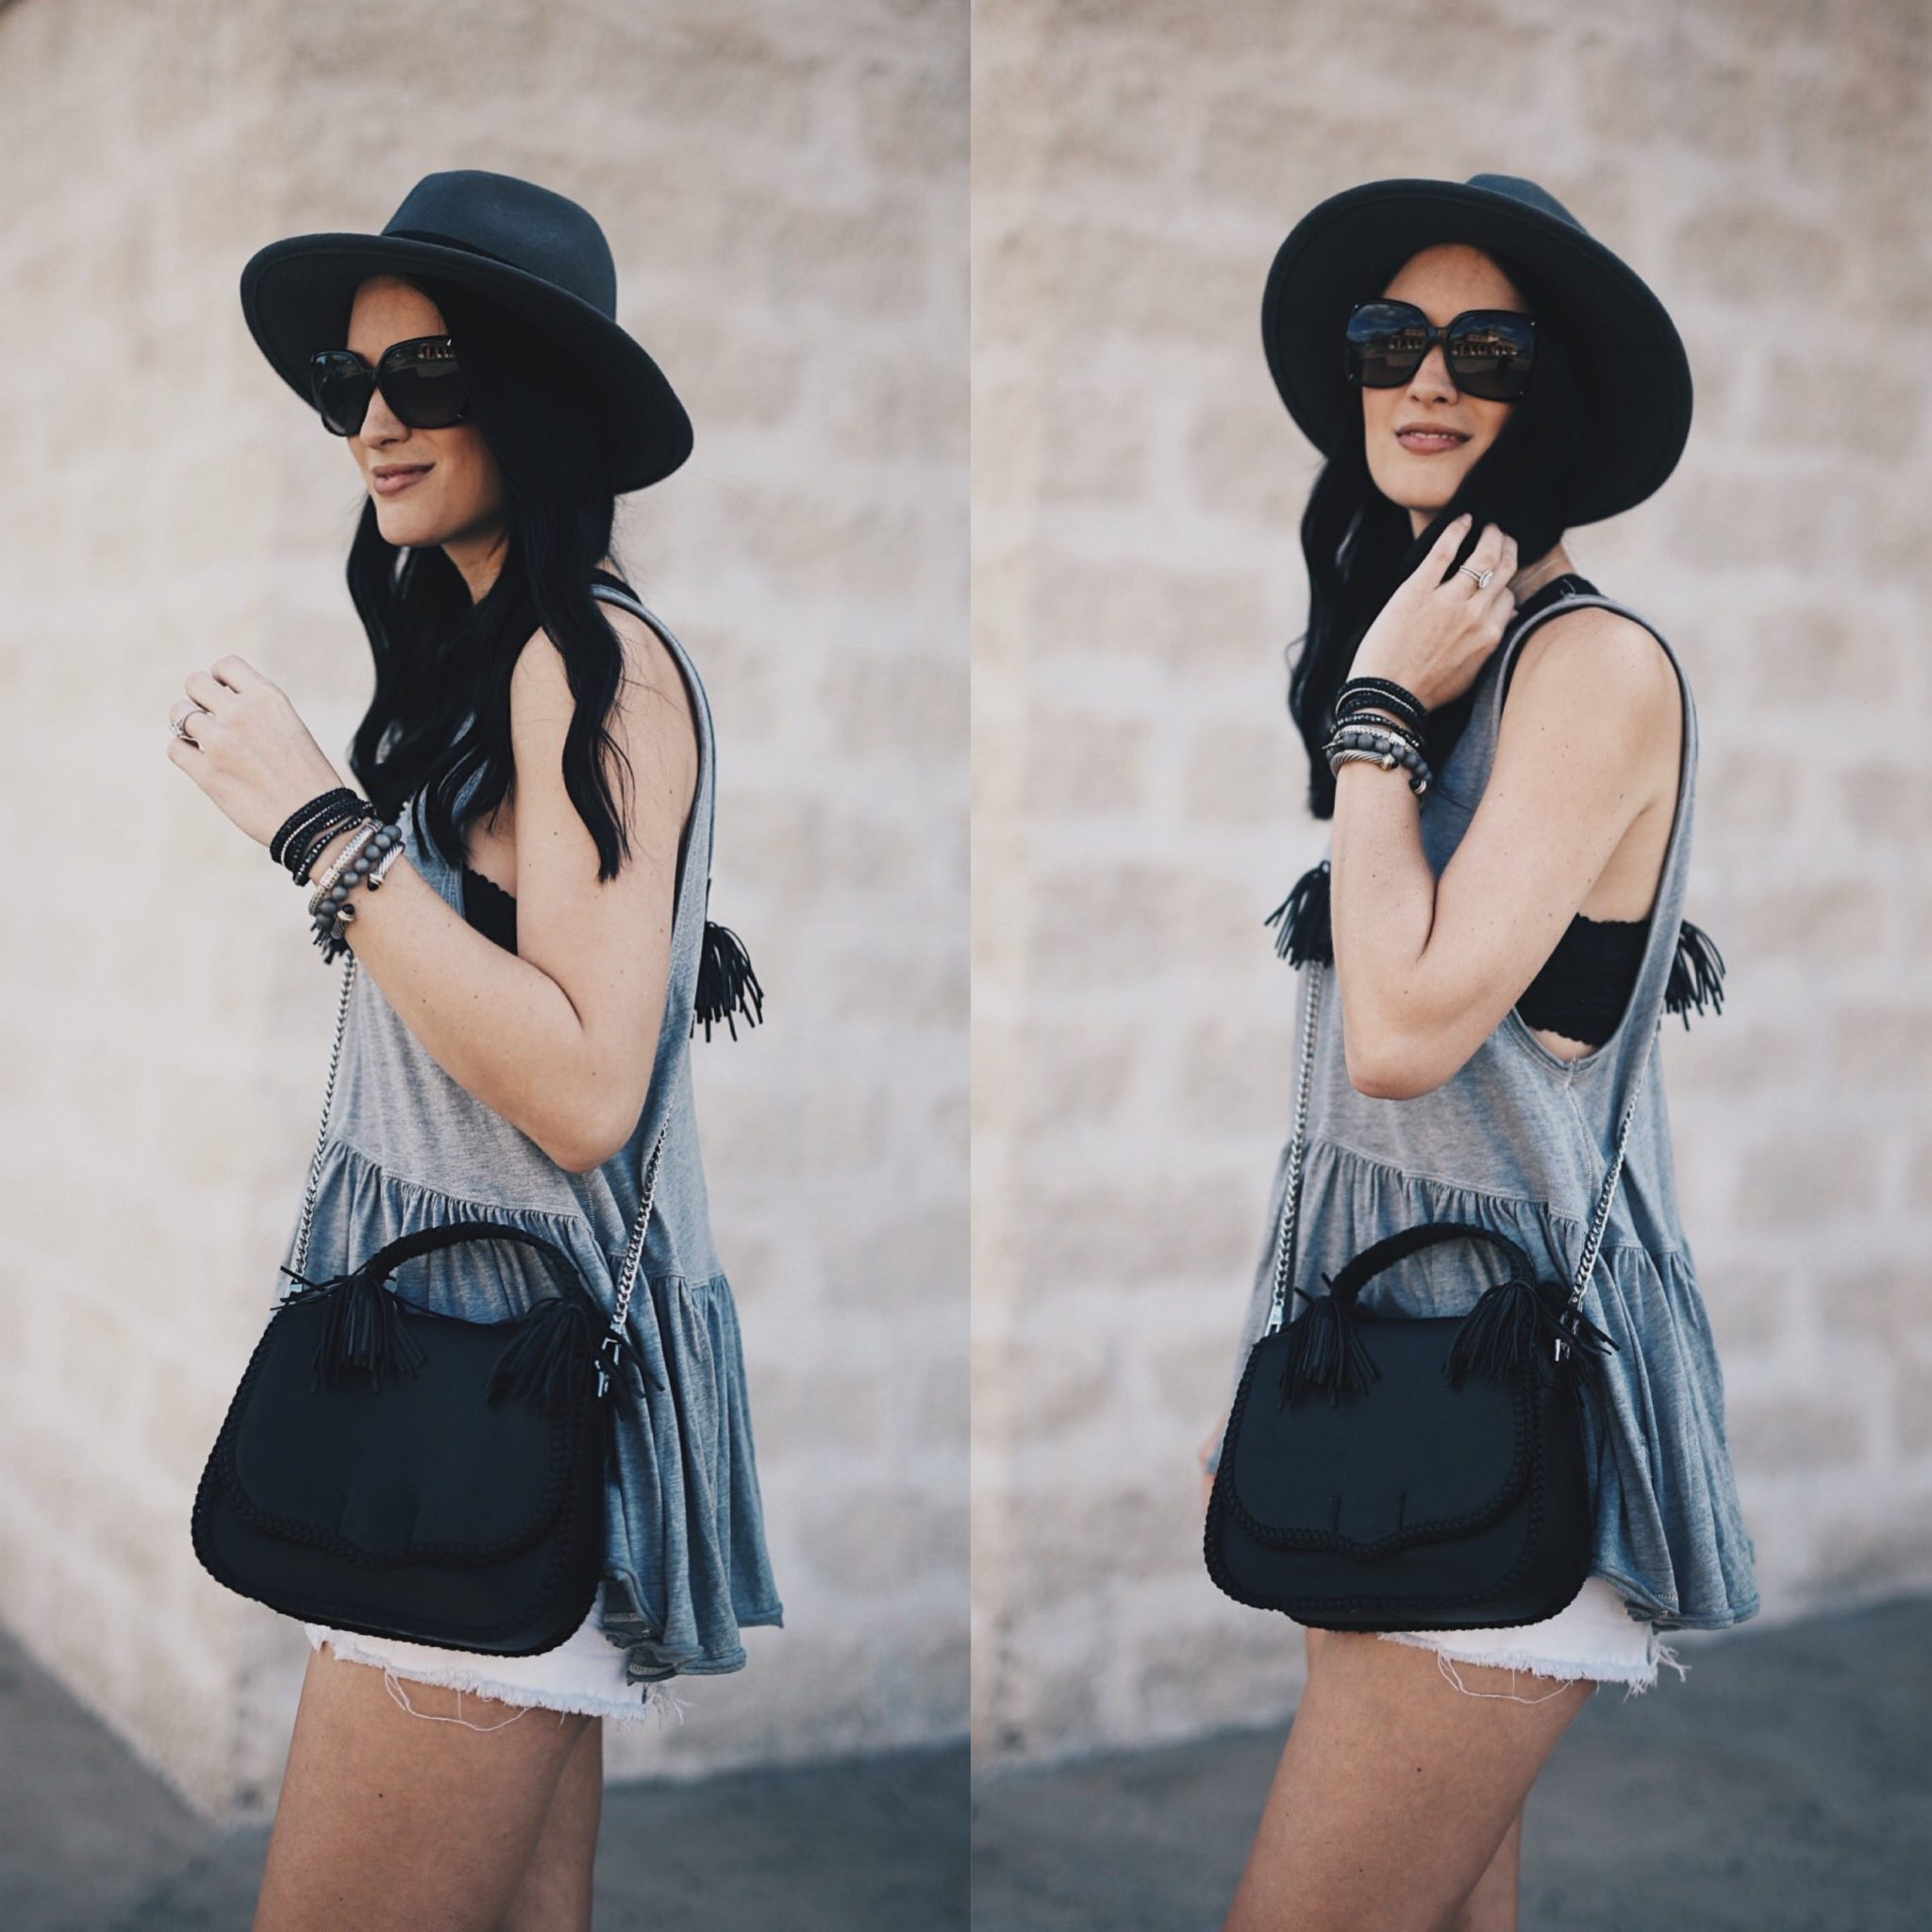 Ashley of DTKAustin shares one of her favorite SXSW festival looks. This Free People top is on sale for $30 and this Rebecca Minkoff bag is a new release! Click for more photos and info.